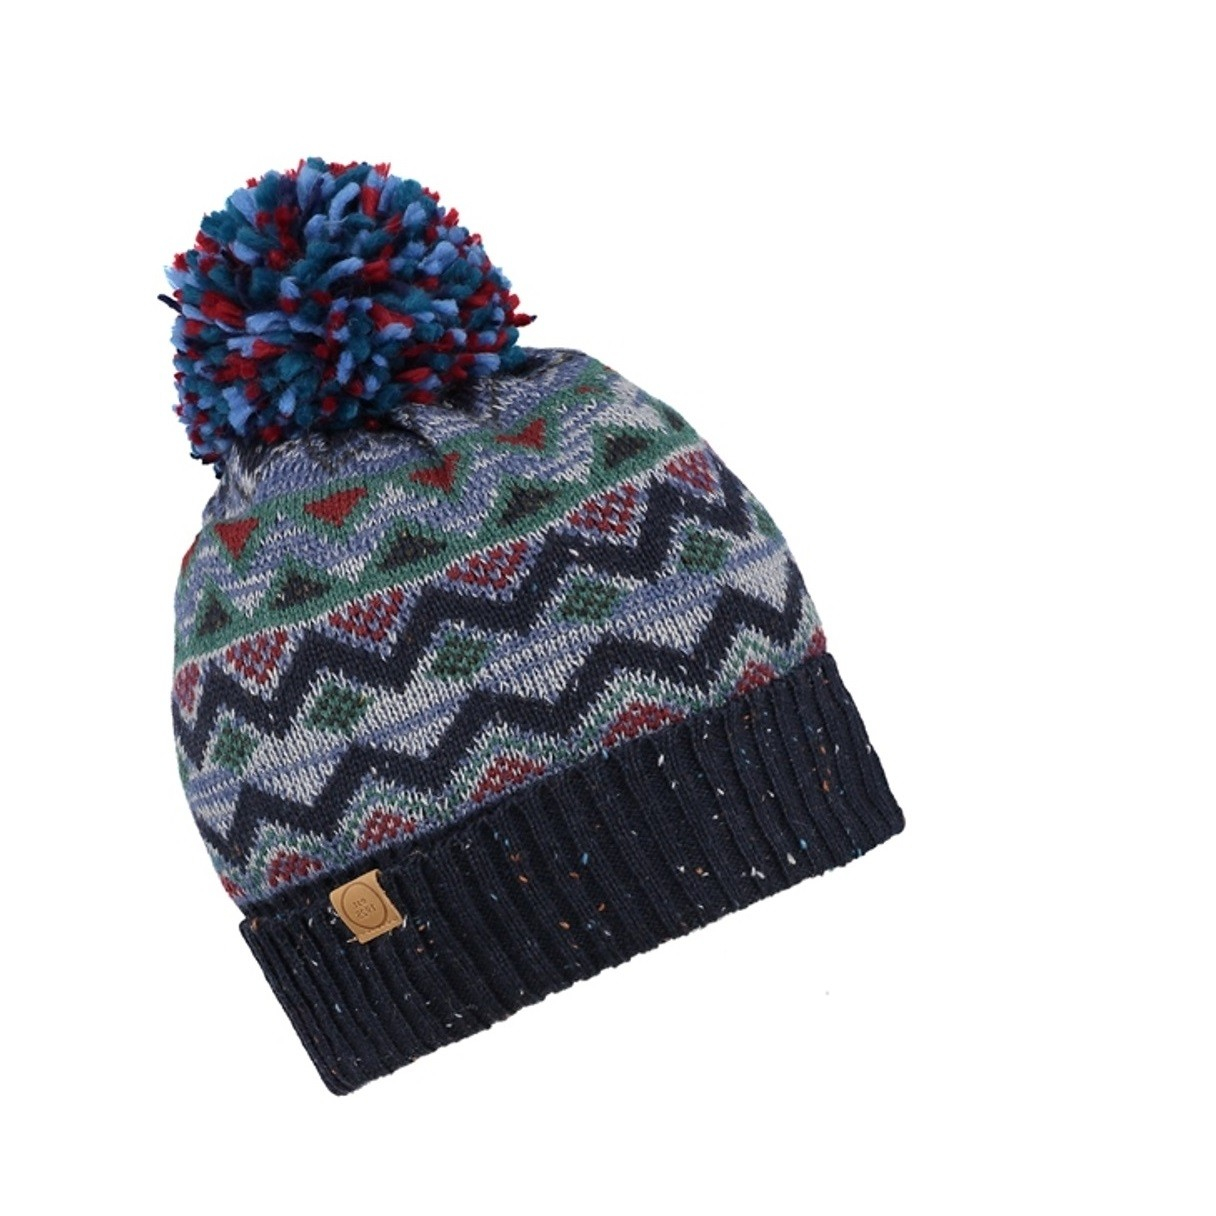 Bobble Hat Knitting Pattern Cooper Fair Isle Knitted Pattern Wool Blend Bobble Hat Brown Or Blue